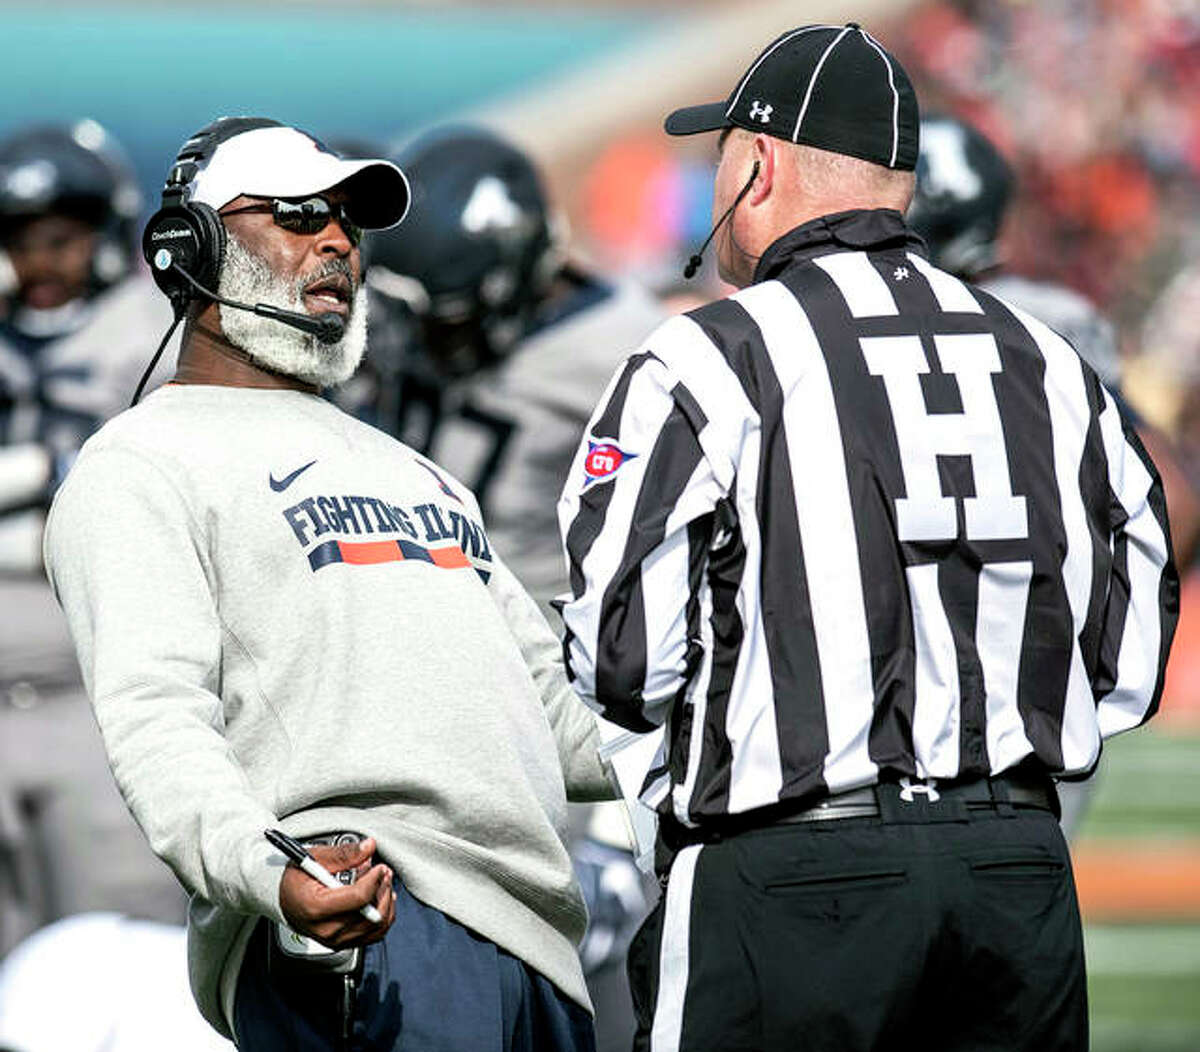 Illinois head coach Lovie Smith, left, reacts to an officials call during a 2018 game. Smith and the Illini will begin the delayed Big 10 season Friday at Wisconsin.